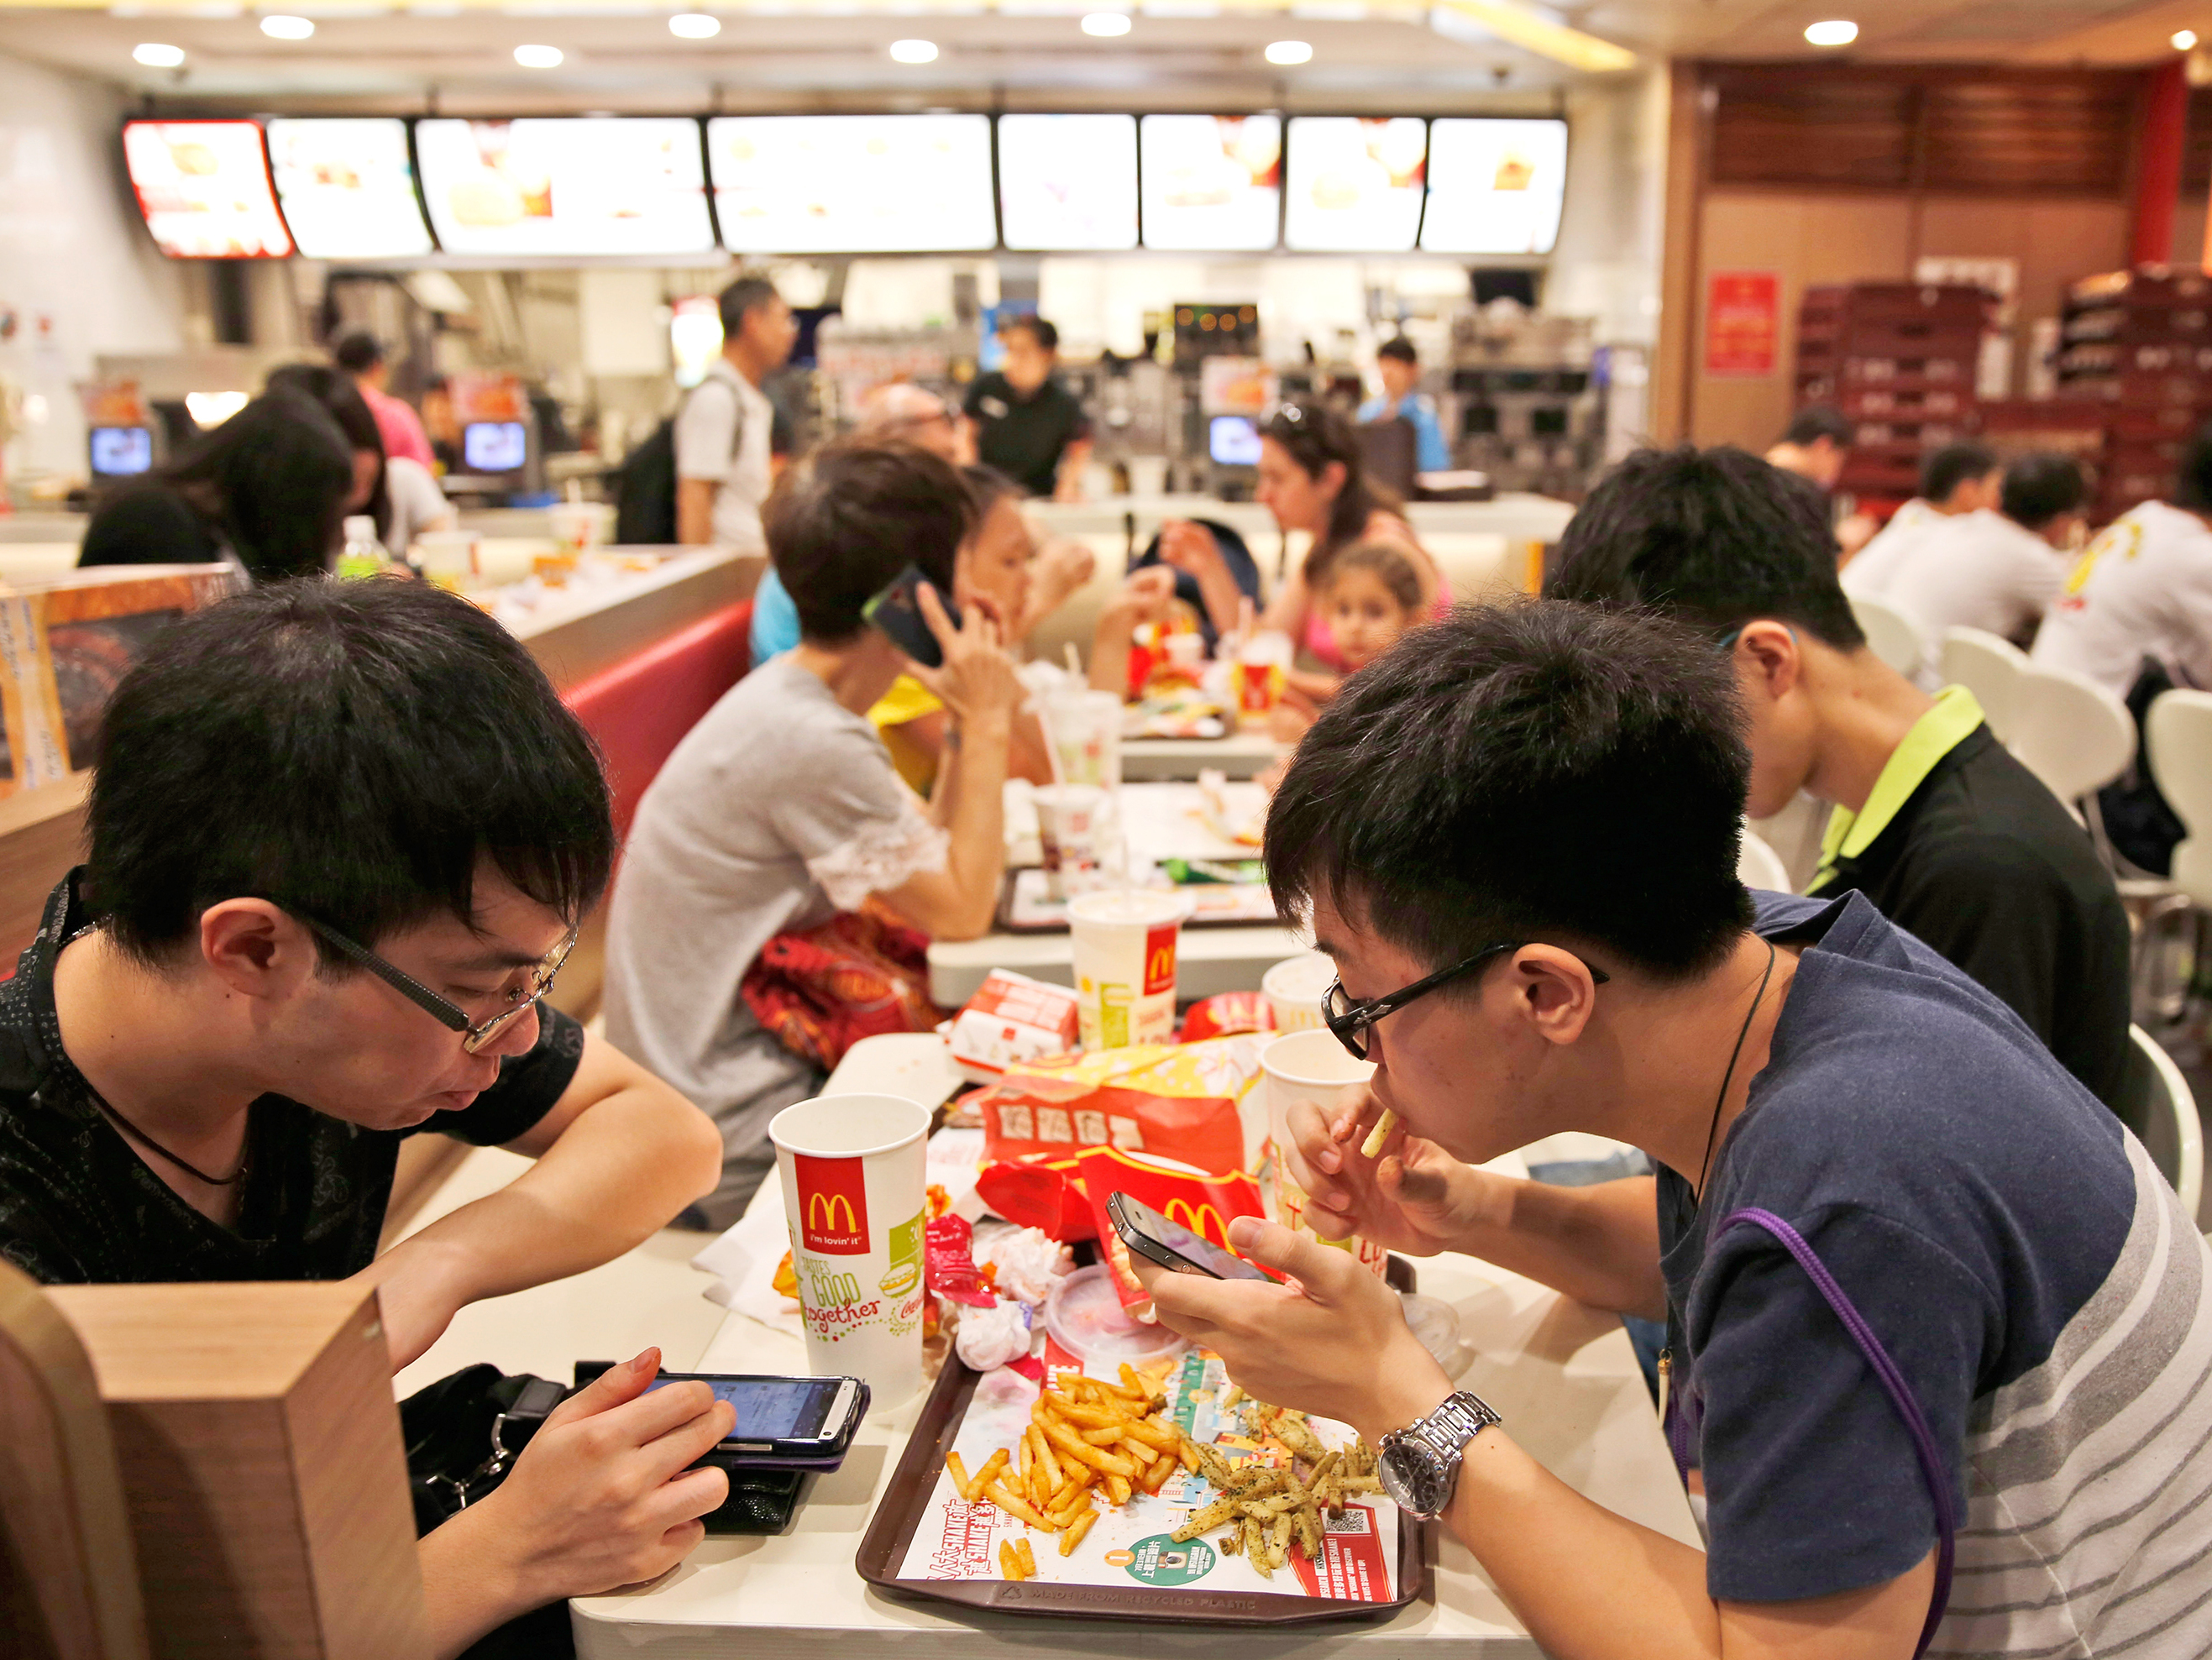 Customers eat at a McDonald's restaurant in Hong Kong Friday, July 25, 2014. McDonald's restaurants in Hong Kong have taken chicken nuggets and chicken filet burgers off the menu after a U.S.-owned supplier in mainland China was accused of selling expired meat. Photo: Kin Cheung/AP